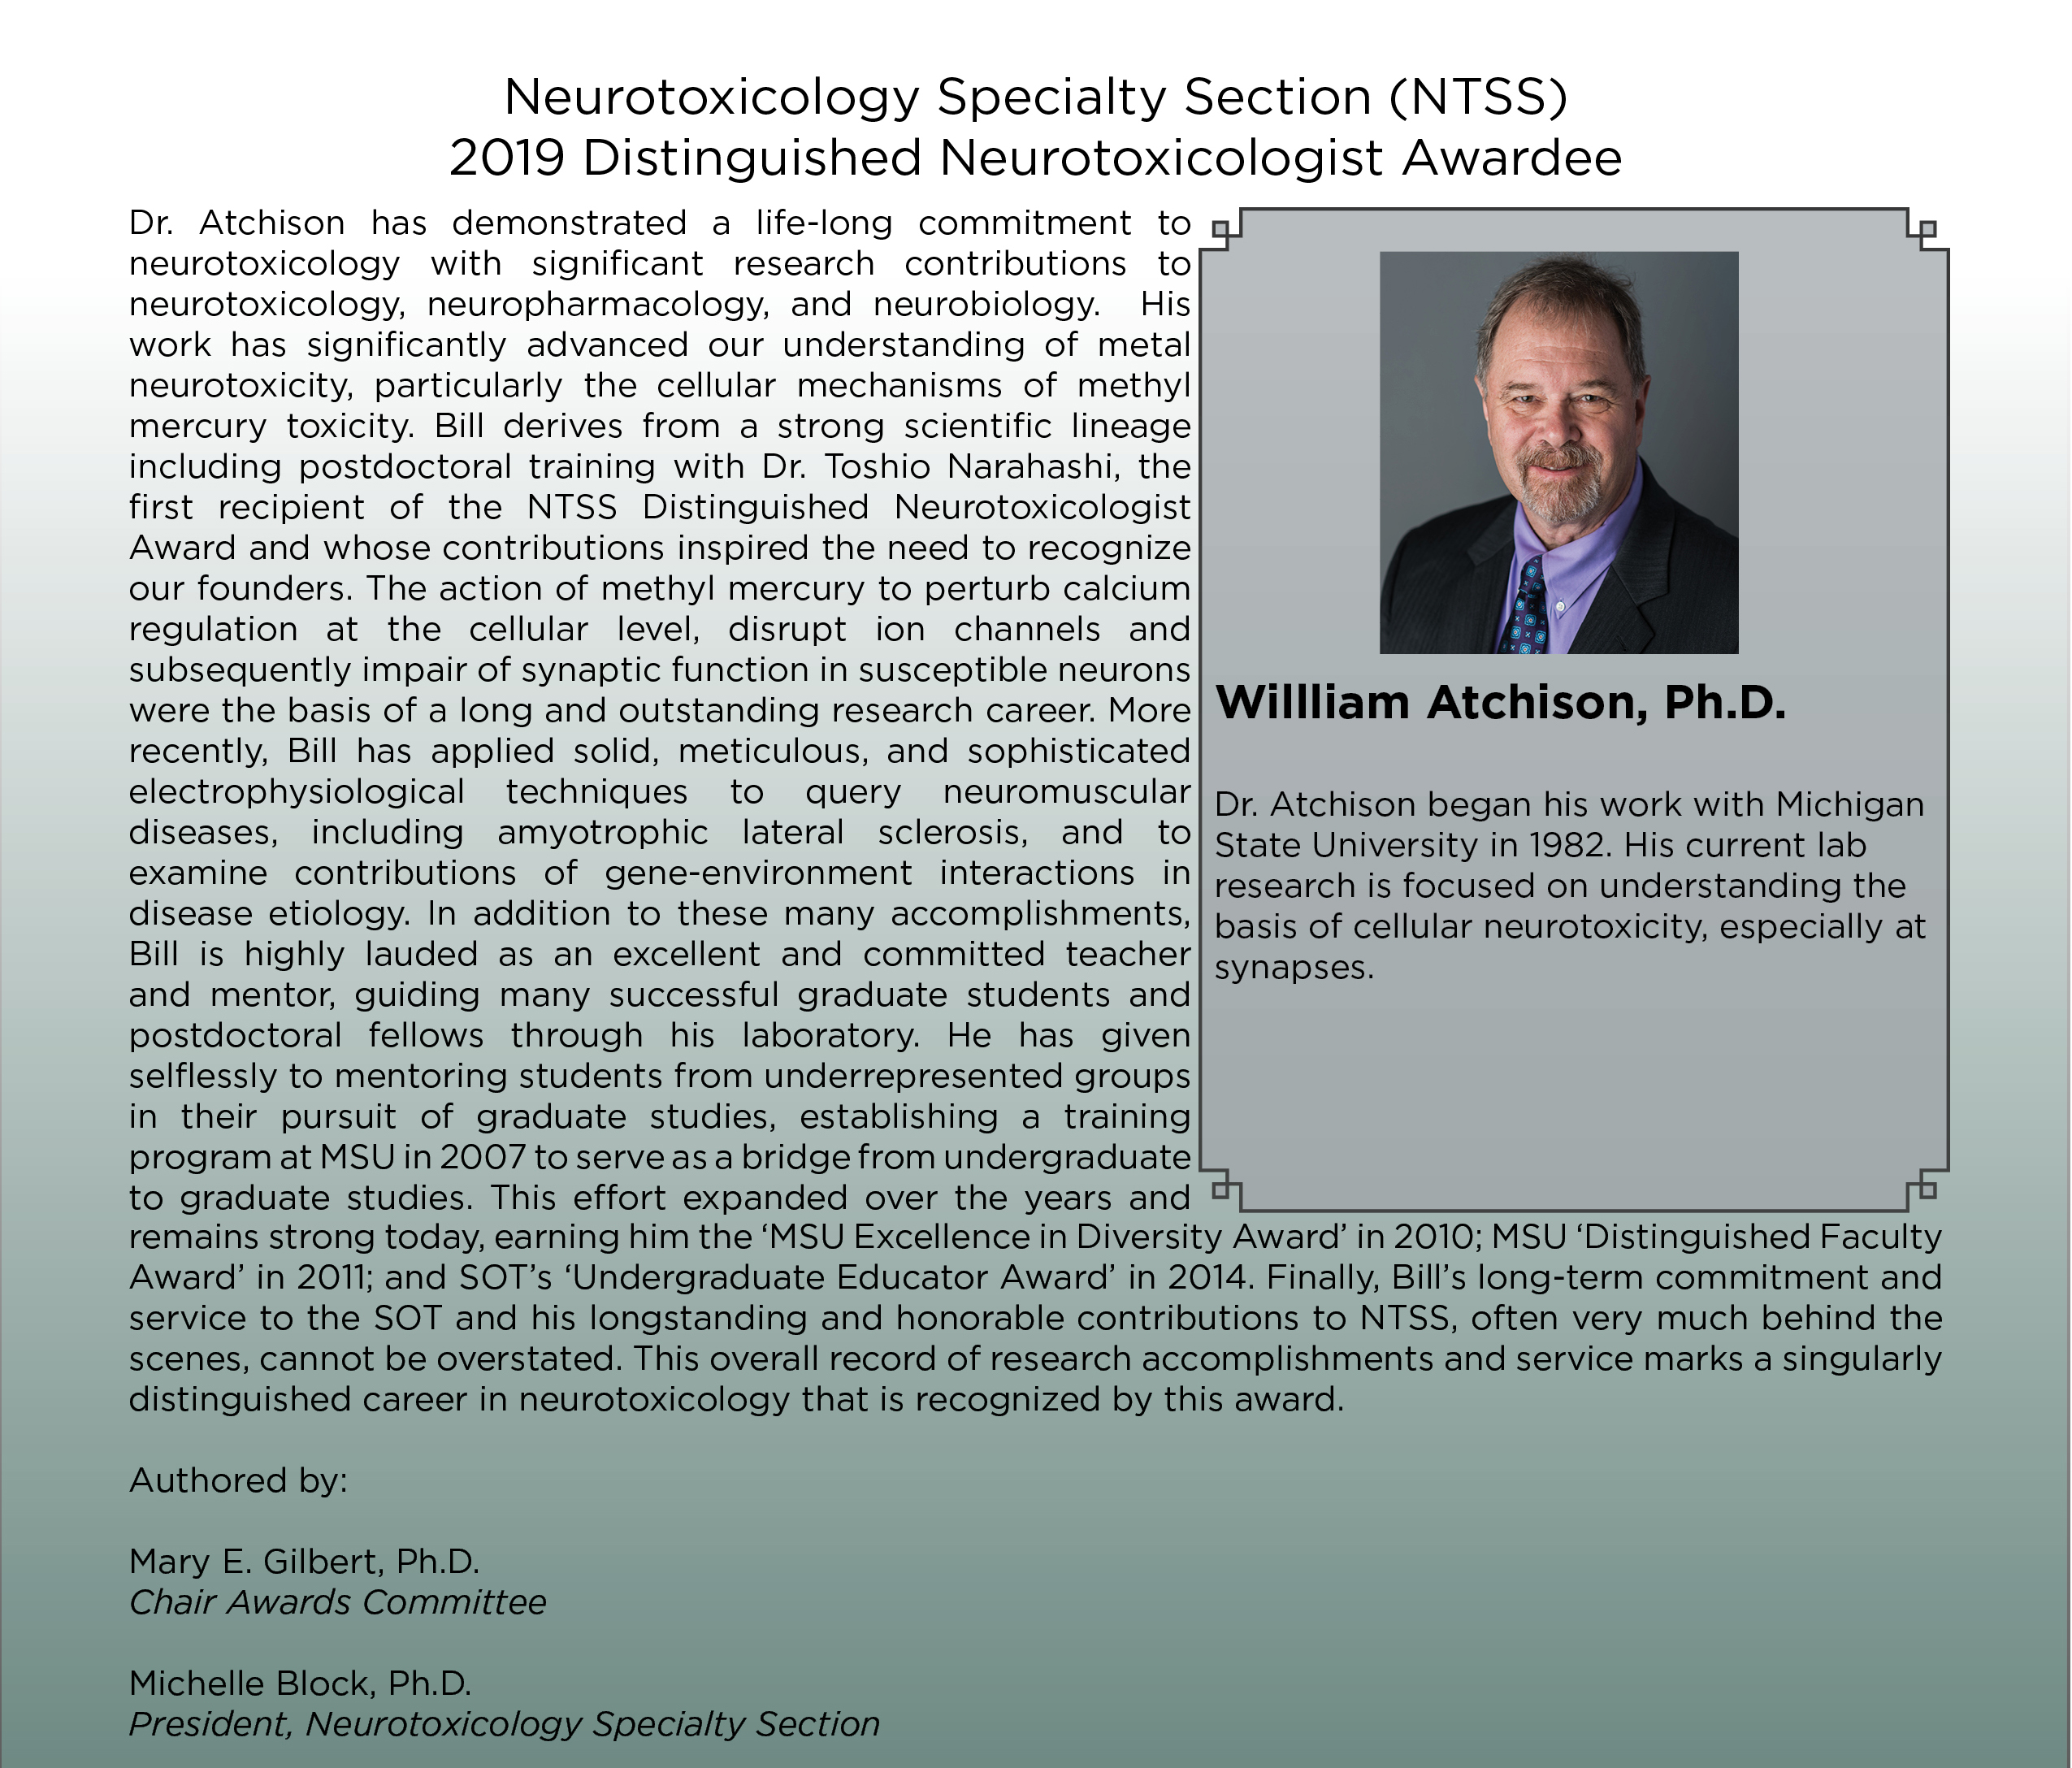 Dr. William Atchison- 2019 Distinguished Neurotoxicologist Awardee